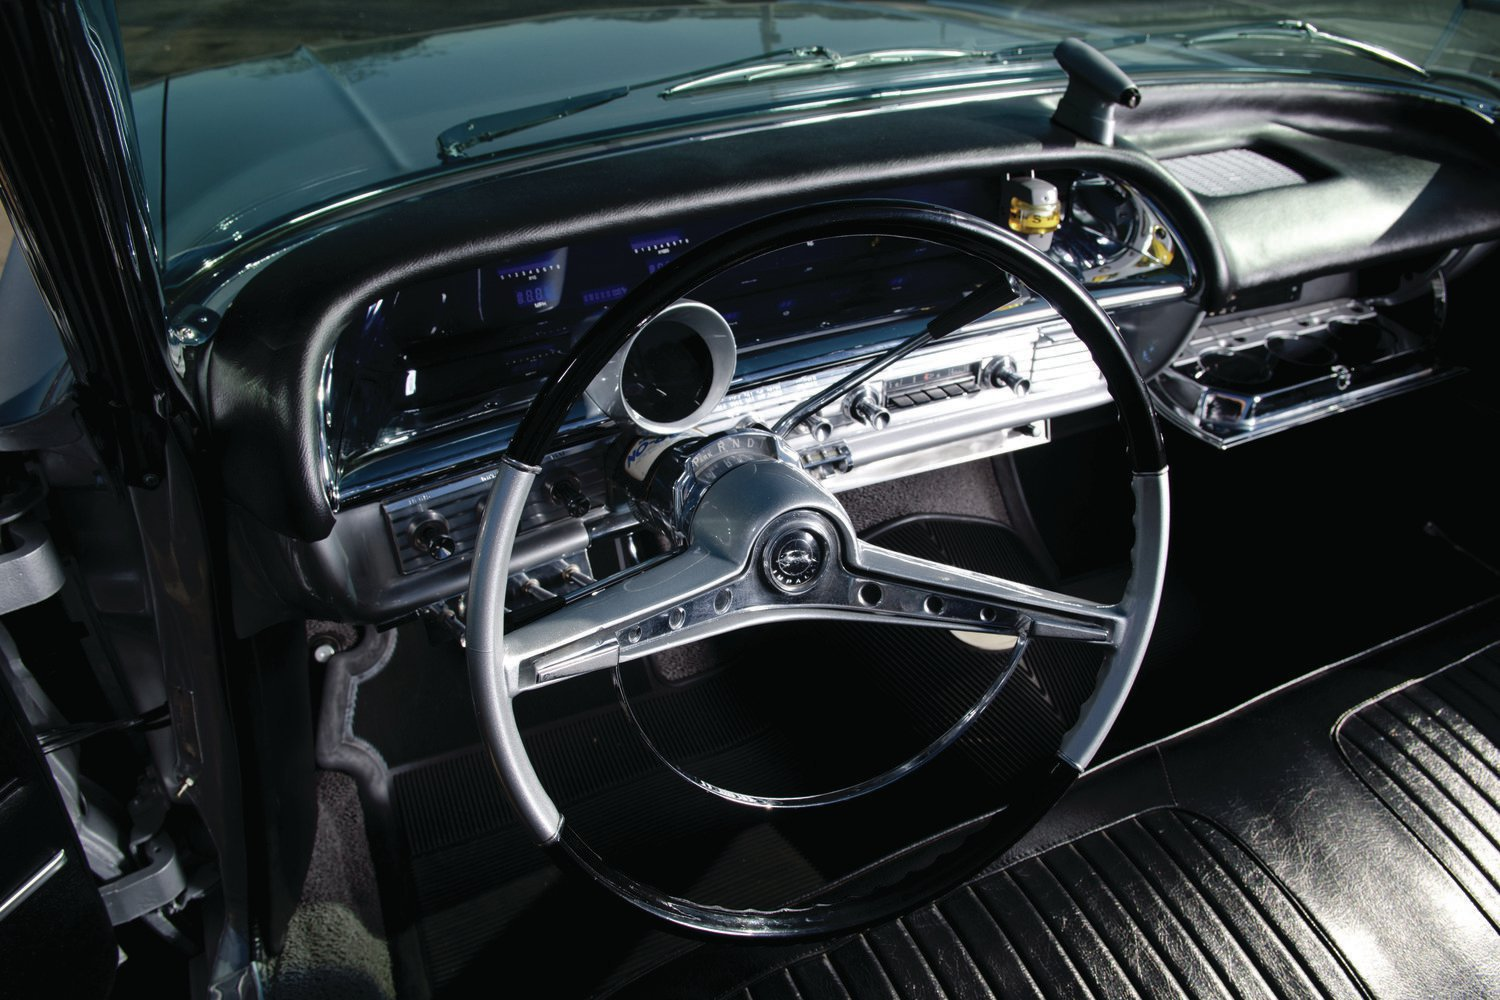 1963 impala tachometer wiring diagram honeywell thermostat wire chevrolet convertible platinum plus